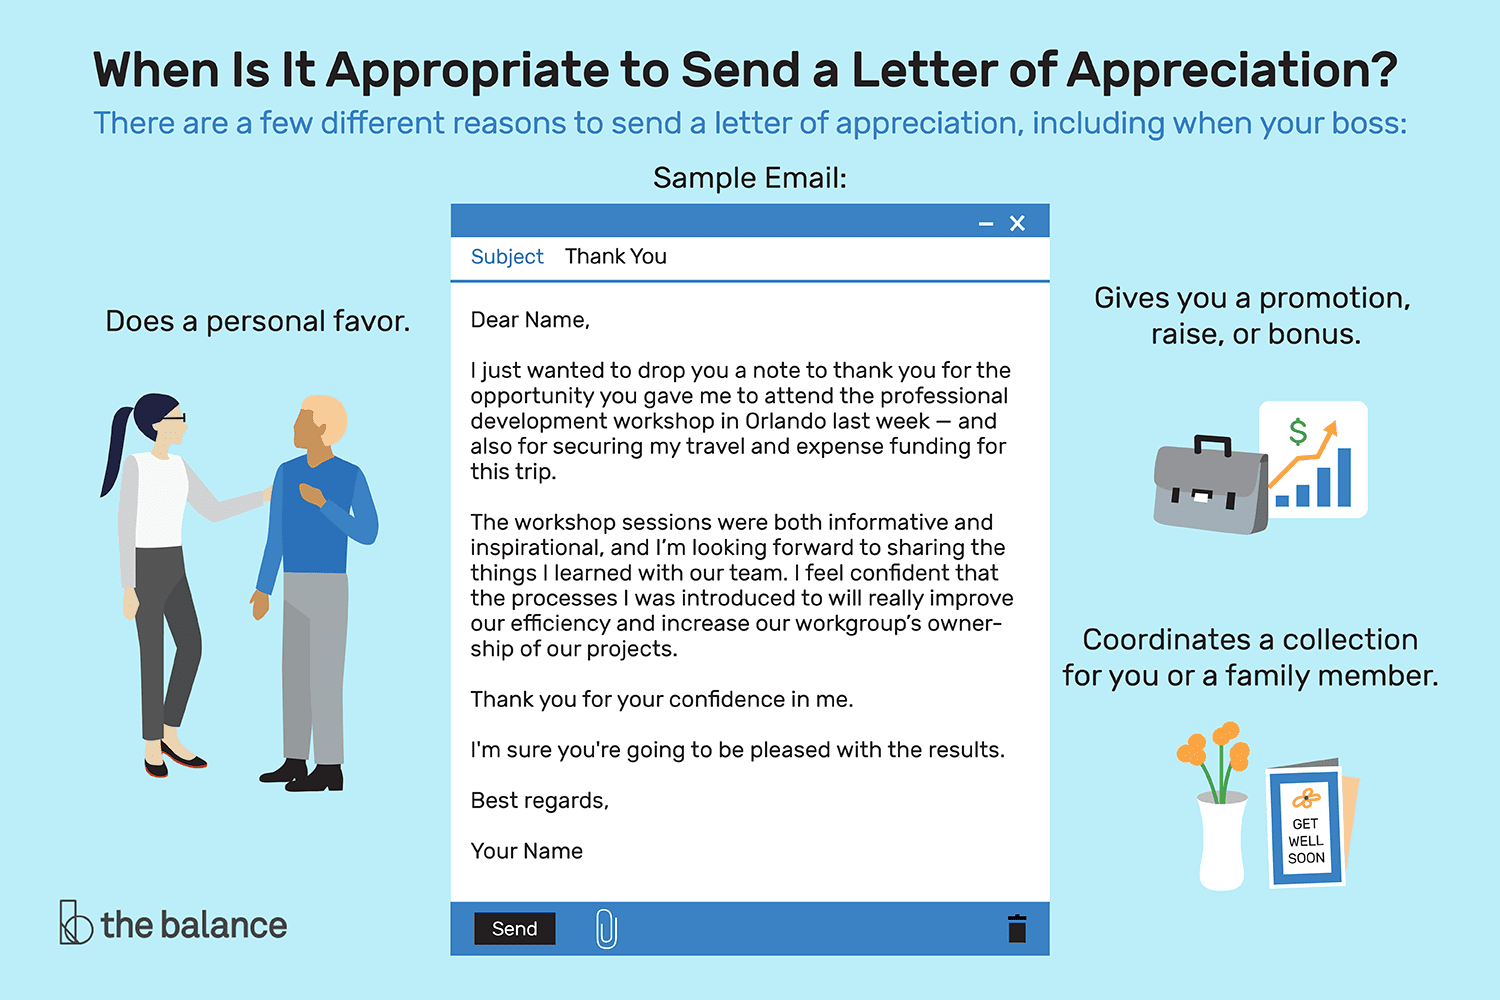 when is it appropriate to send a letter of appreciation